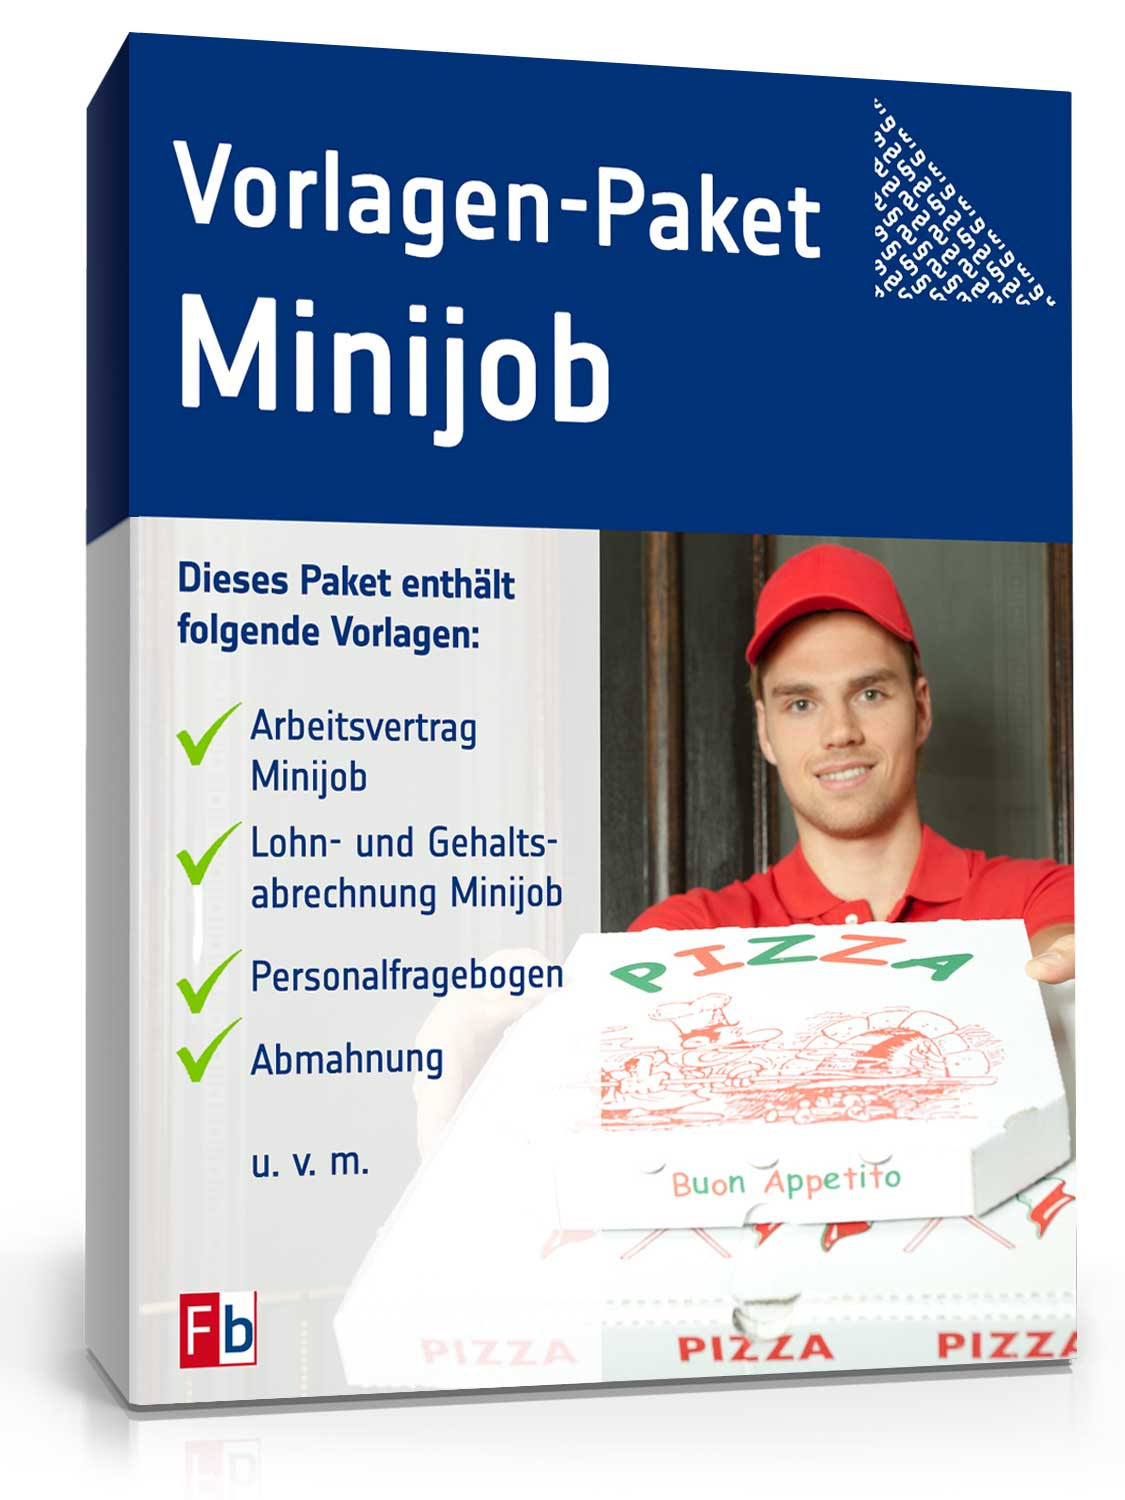 Vorlagen-Paket Minijob 2017 [Zip Ordner] [Download]